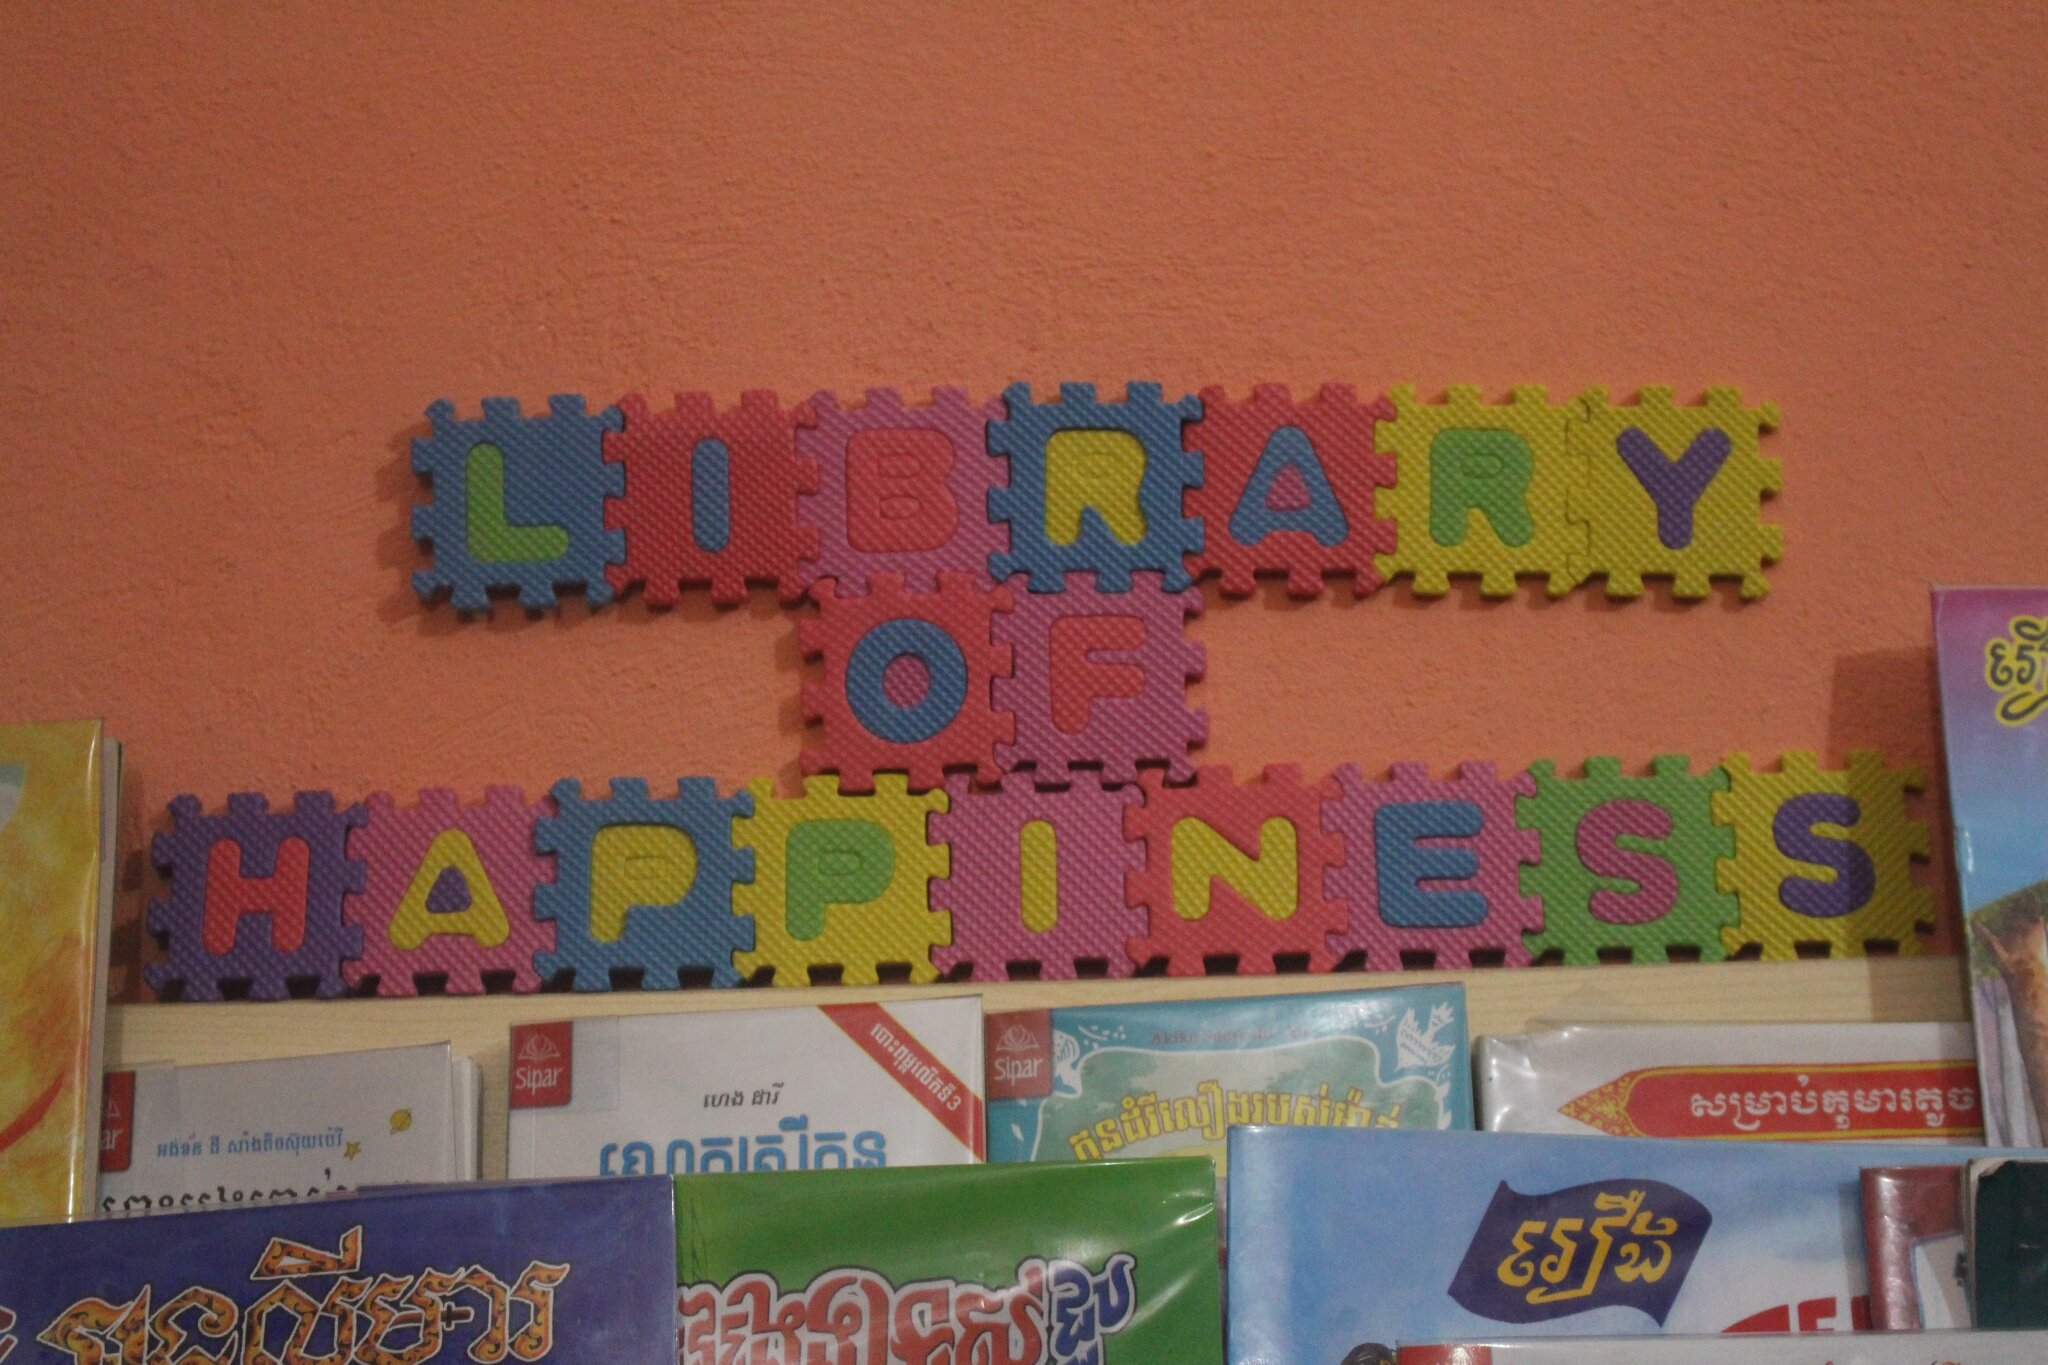 La « Bibliothèque du Bonheur » Pourquoi ce nom ? / The « Library of Happiness » Why this name ?